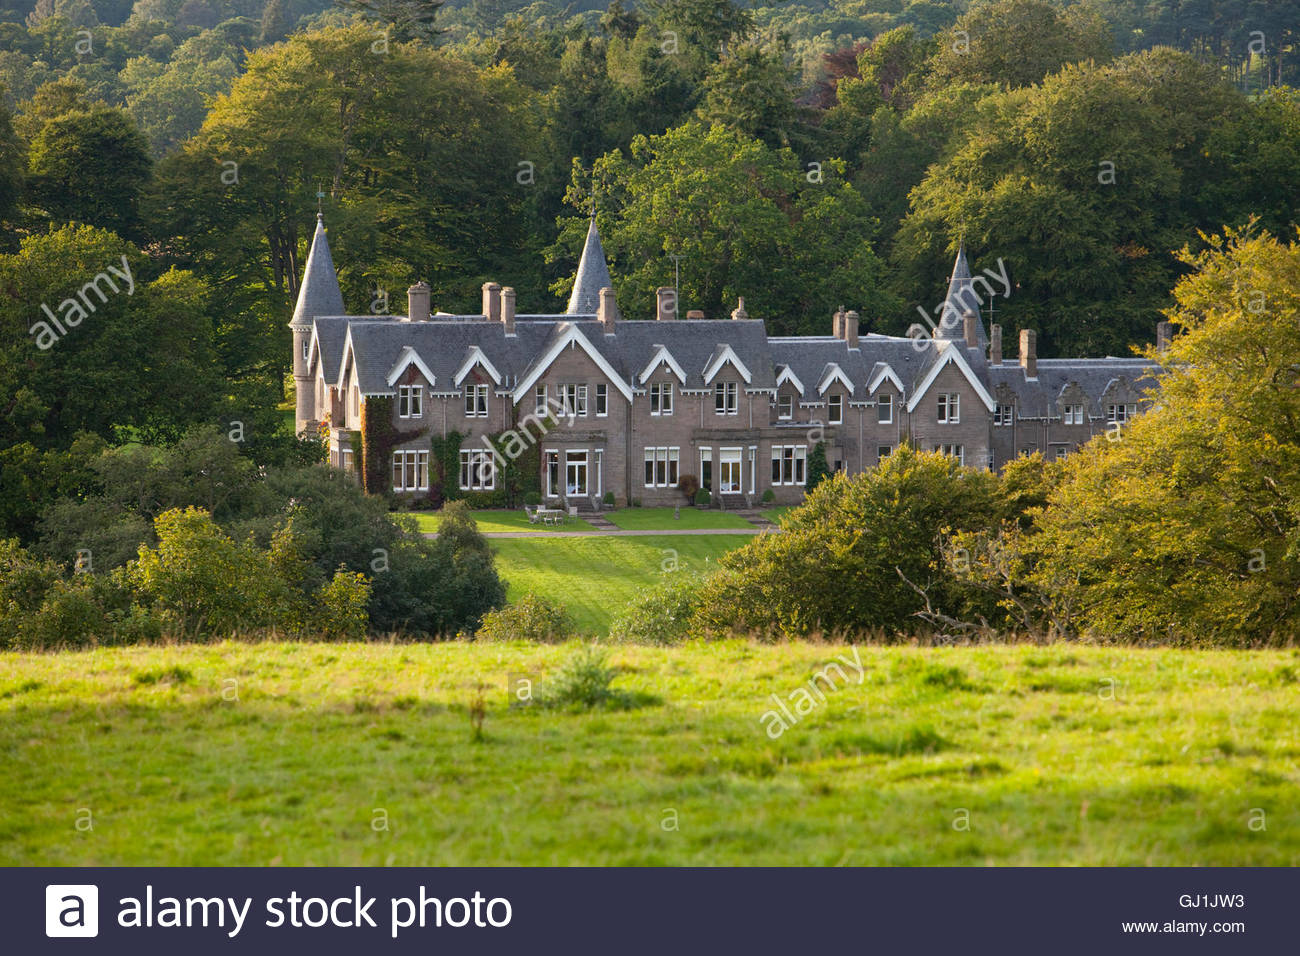 Ballathie Country House Hotel, Kinclaven, Perthshire, Scotland. - Stock Image